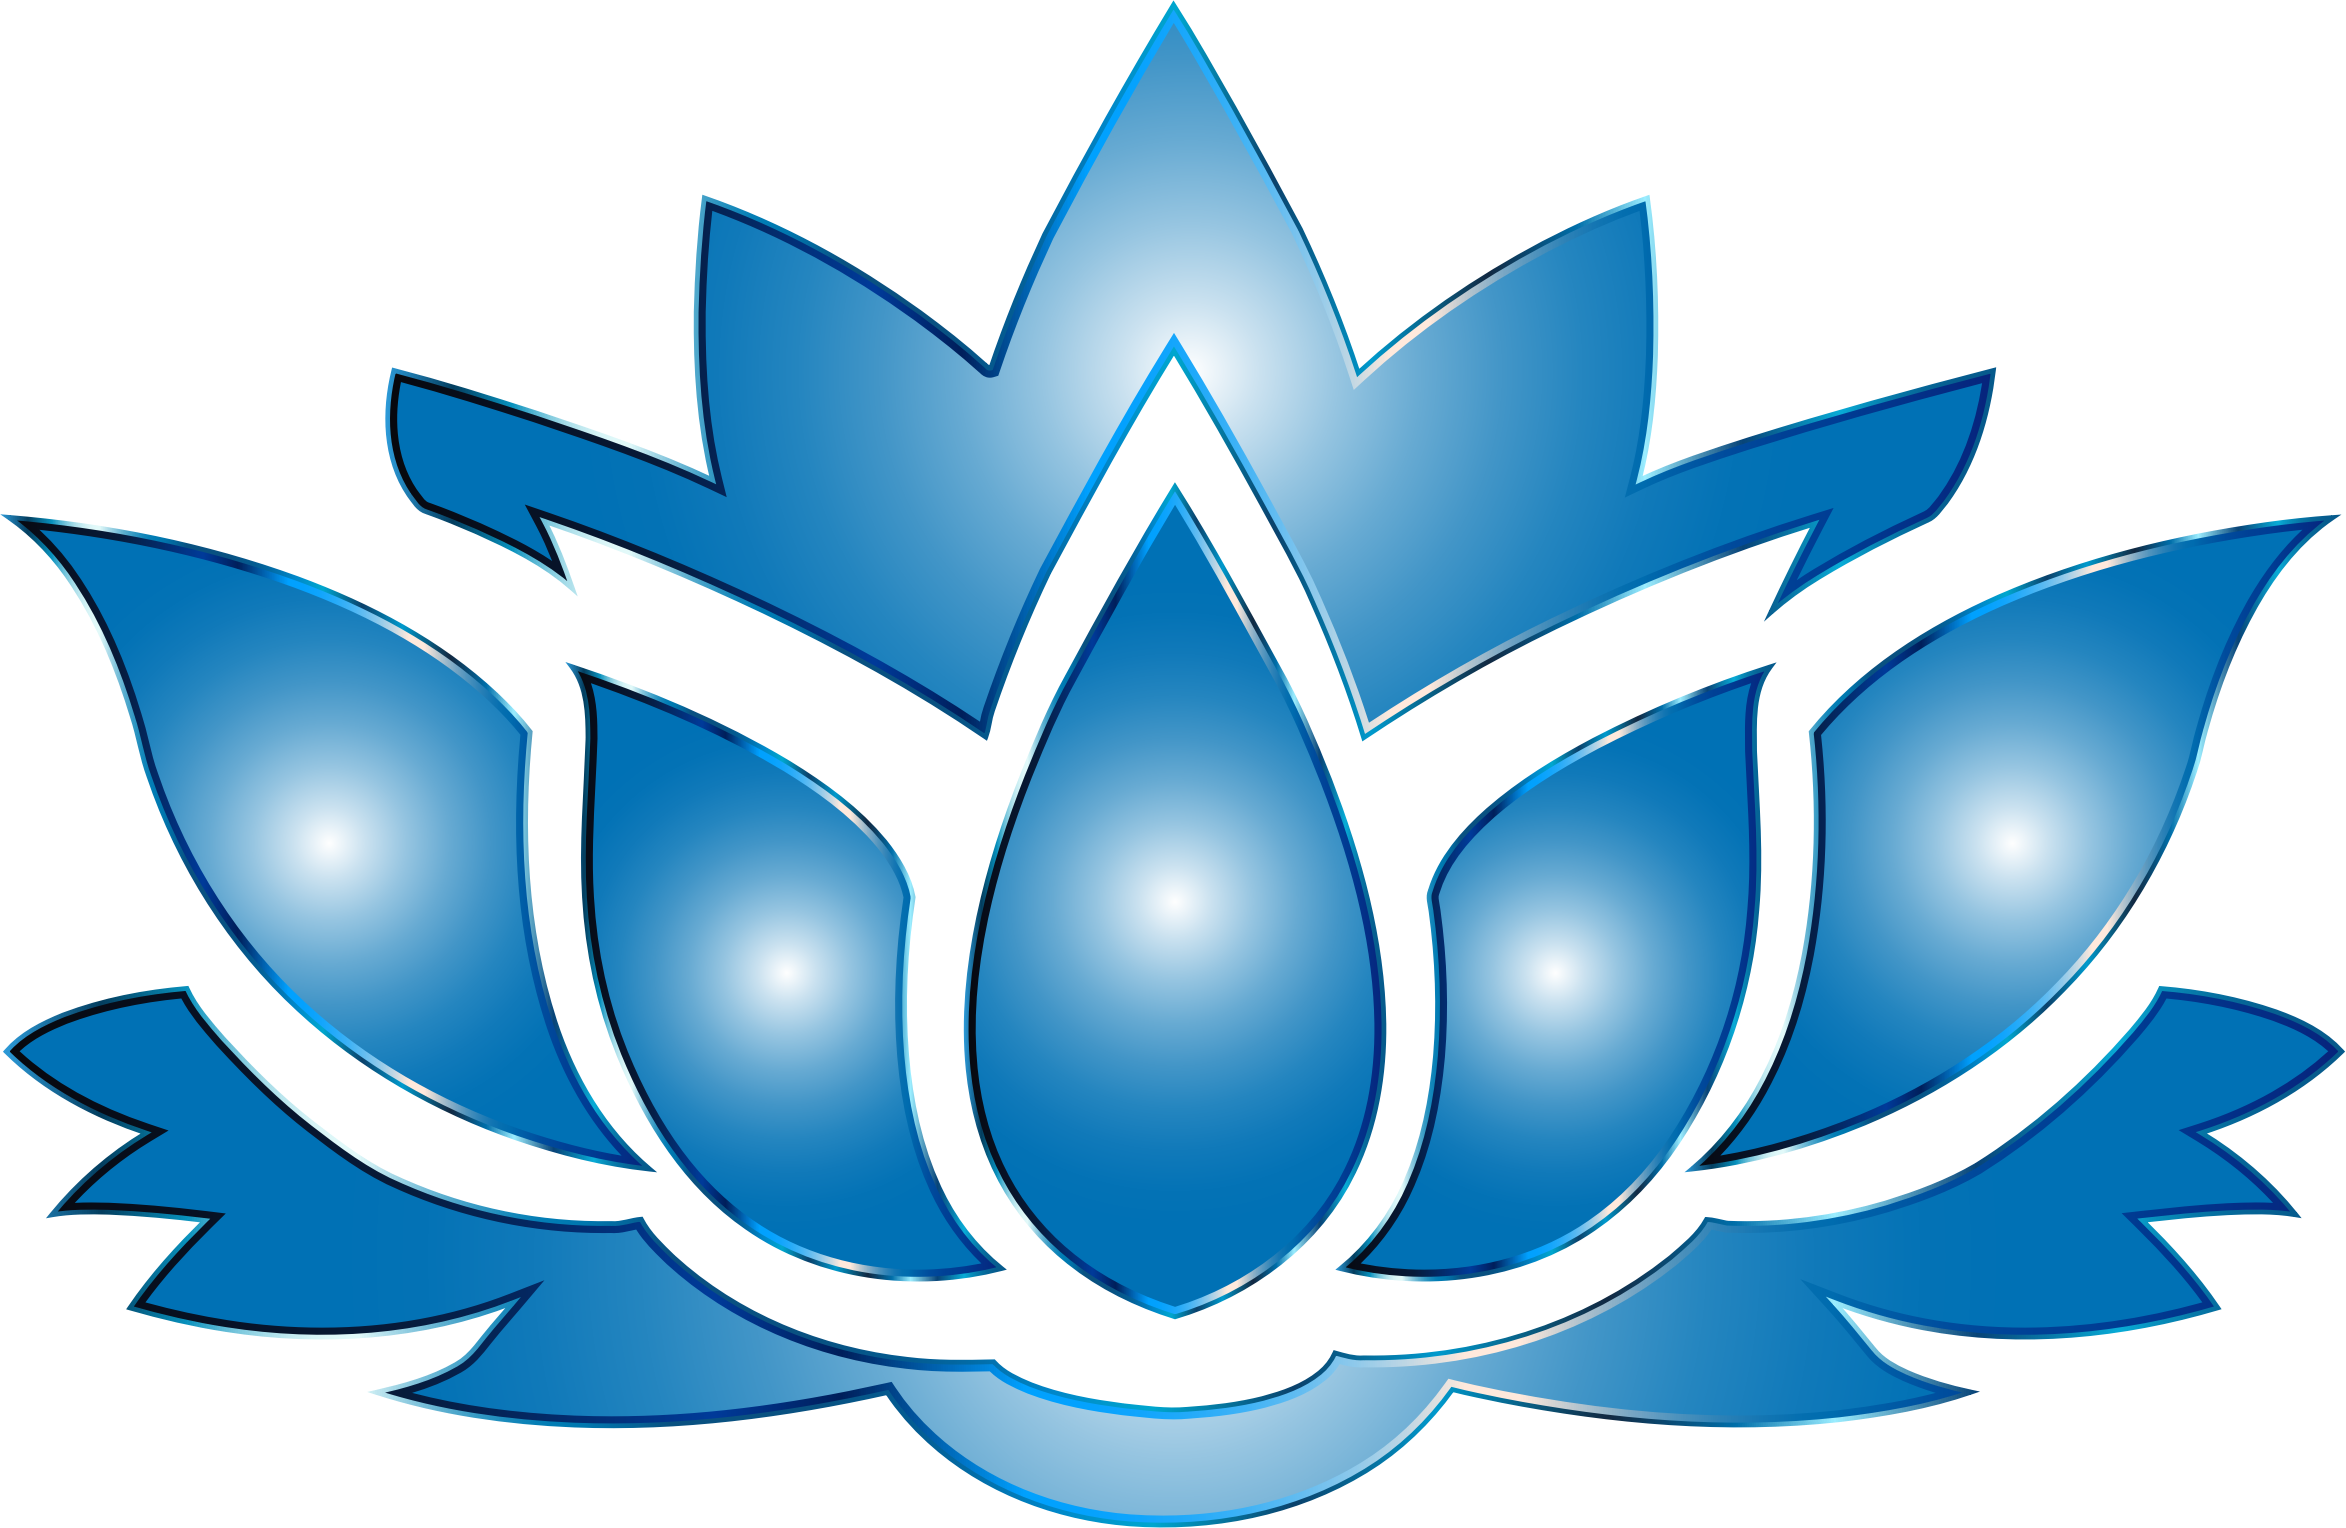 Lotus flower clipart transparent background.